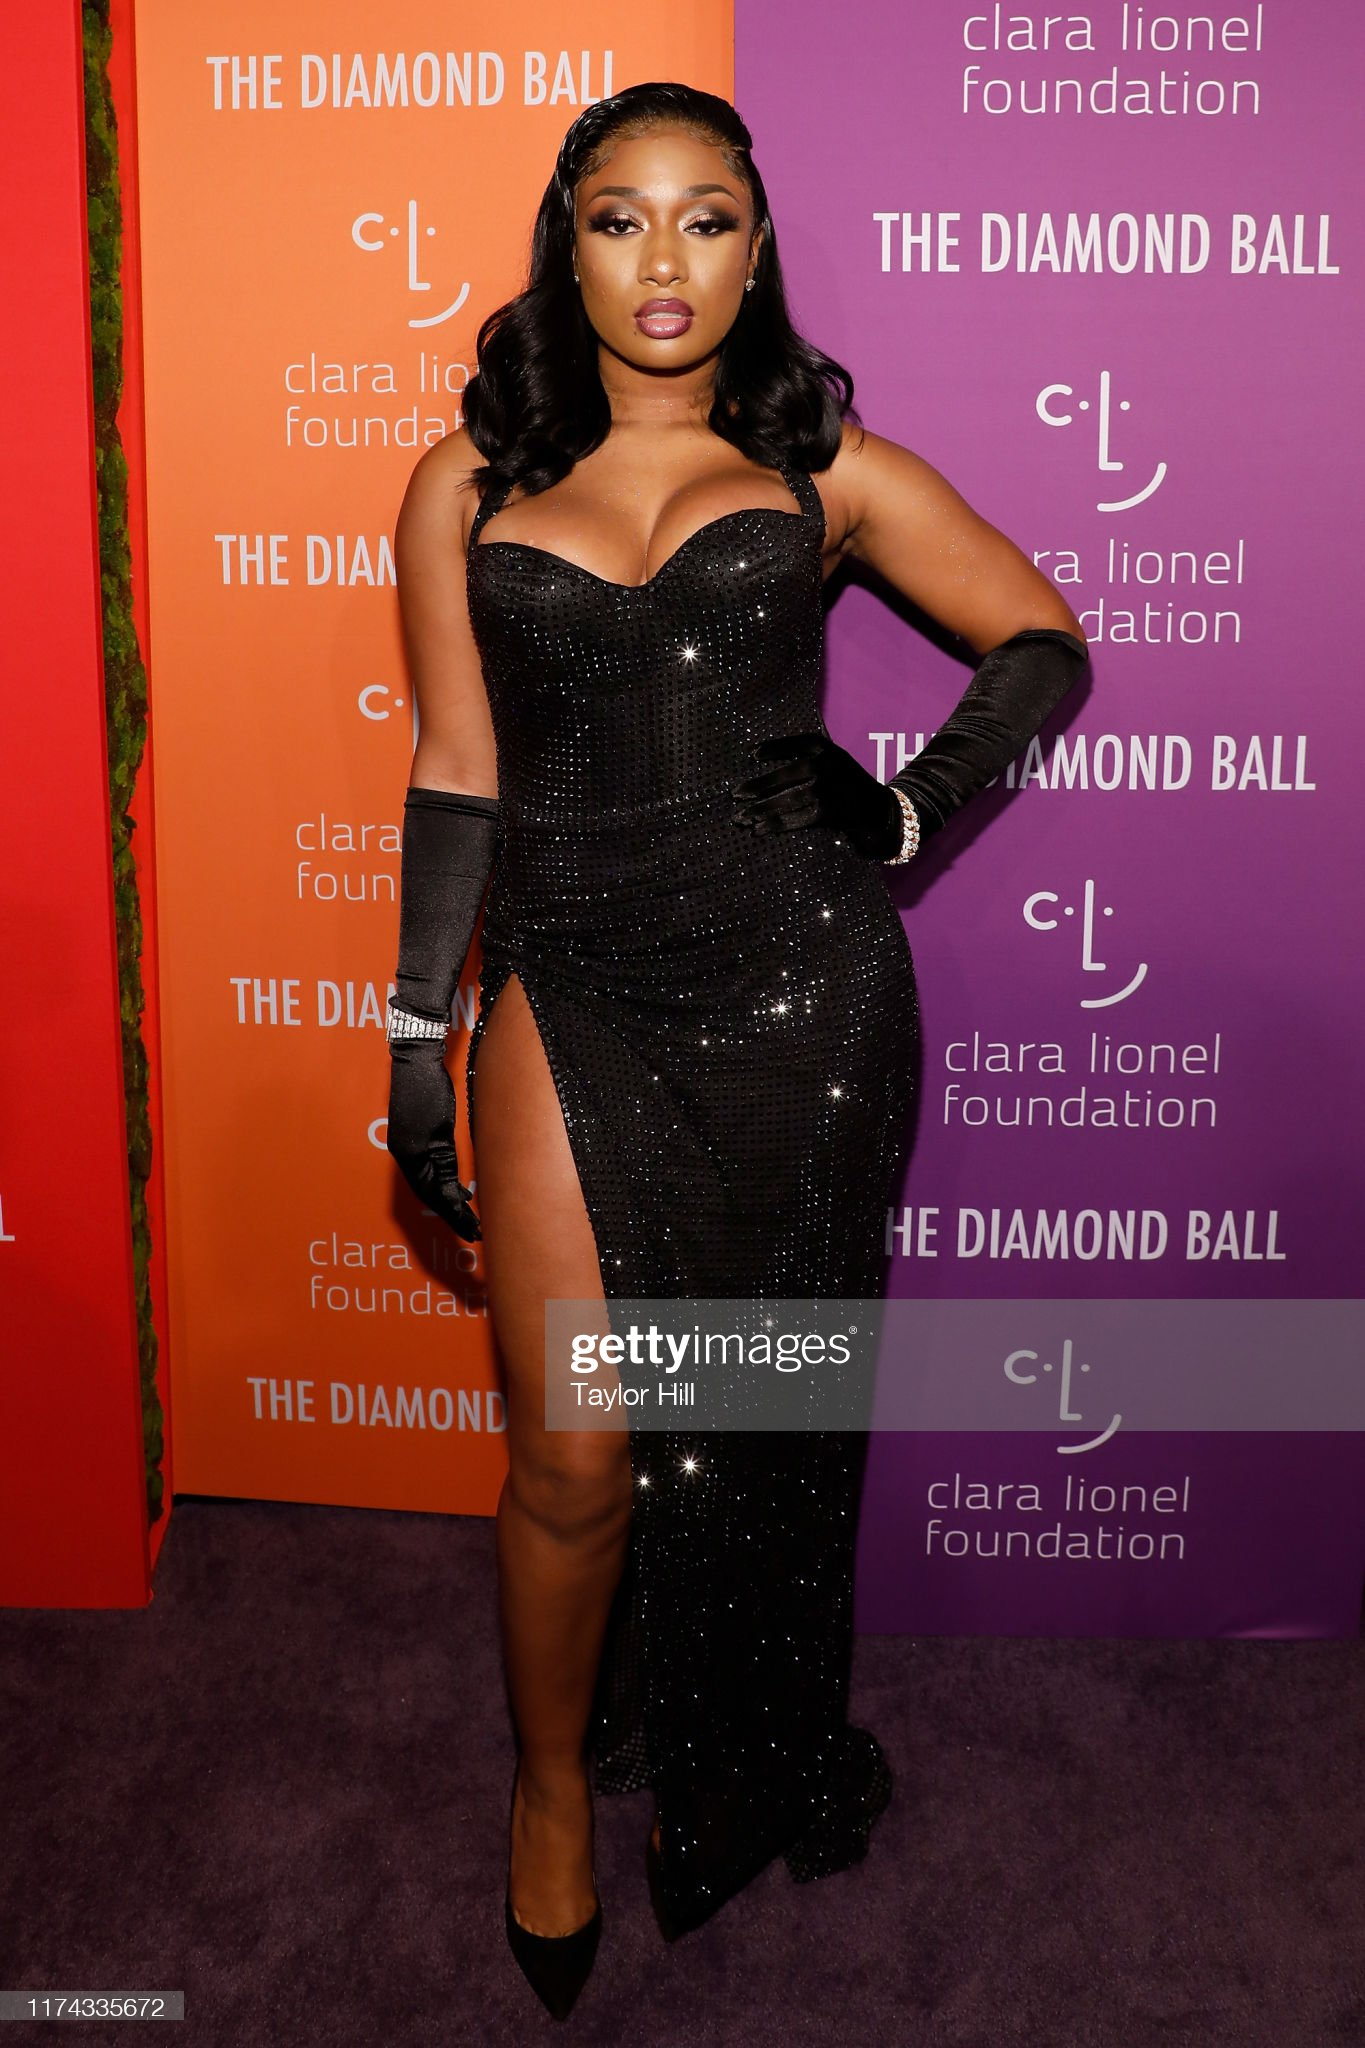 ¿Cuánto mide Megan Thee Stallion? - Altura - Real height Megan-thee-stallion-attends-the-5th-annual-diamond-ball-benefiting-picture-id1174335672?s=2048x2048